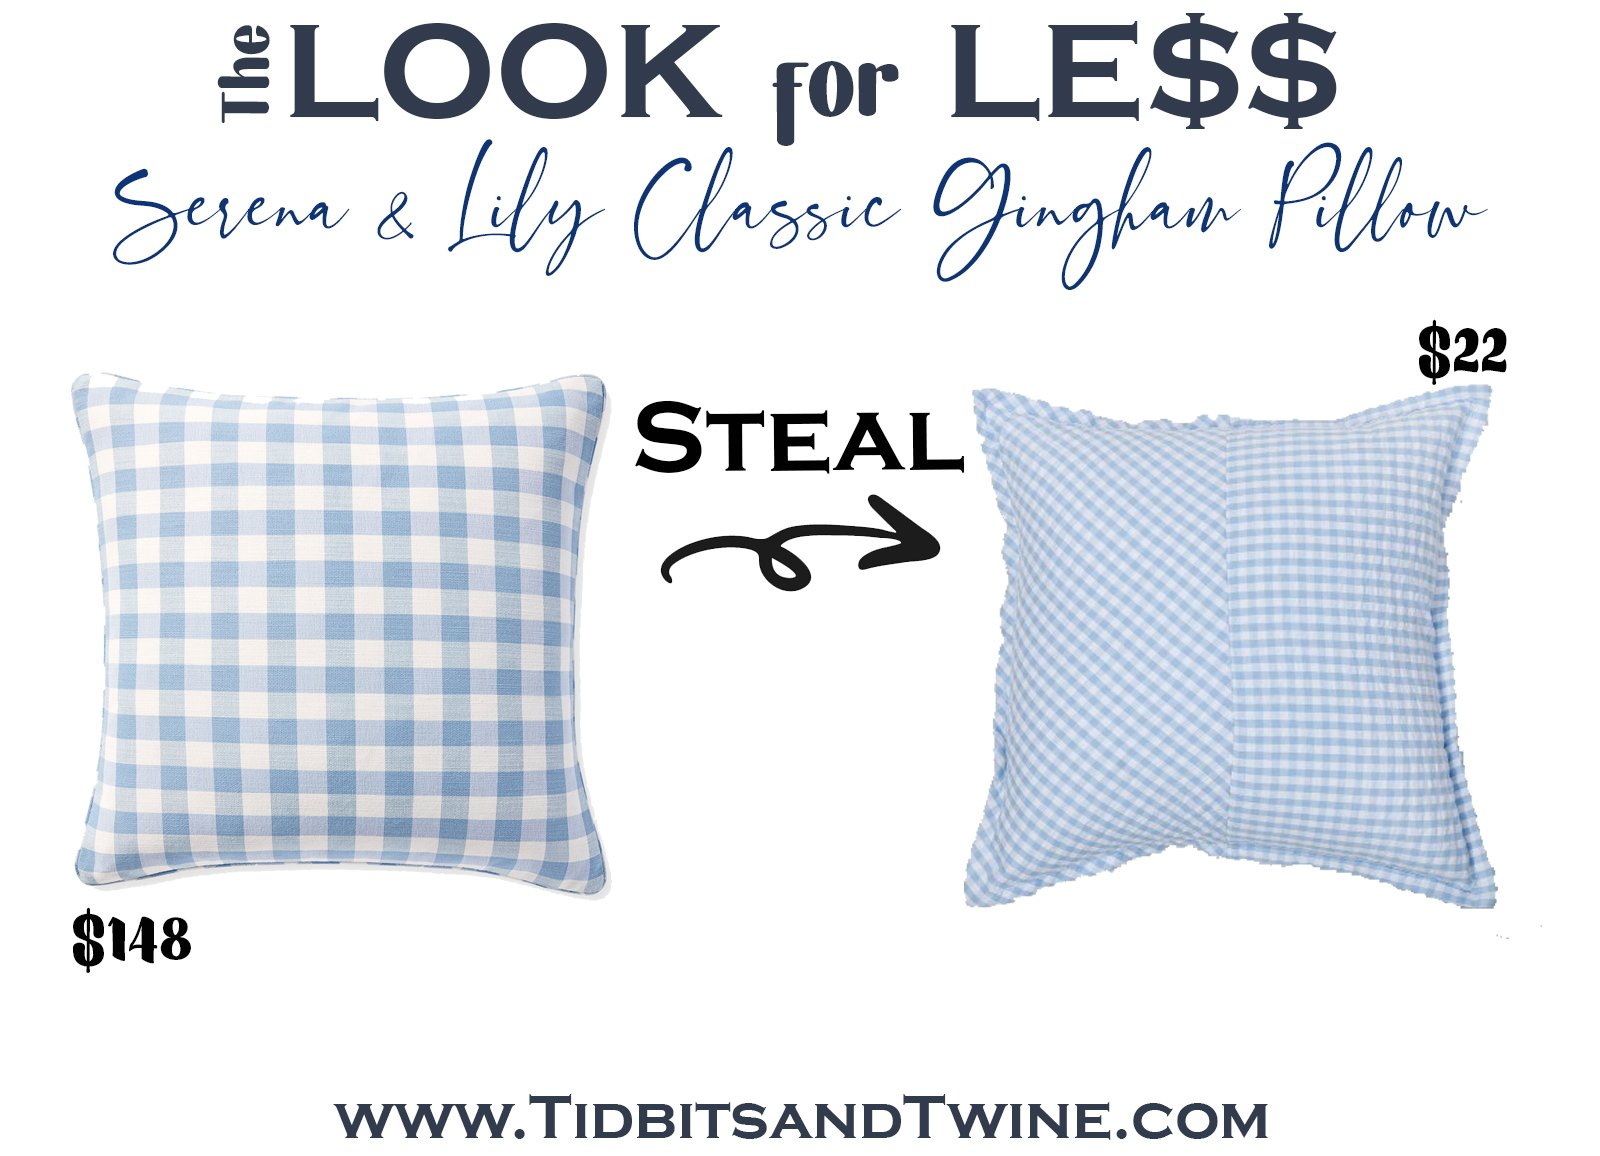 serena and lily blue and white gingham pillow next to a dupe with text overlay saying The Look for Less